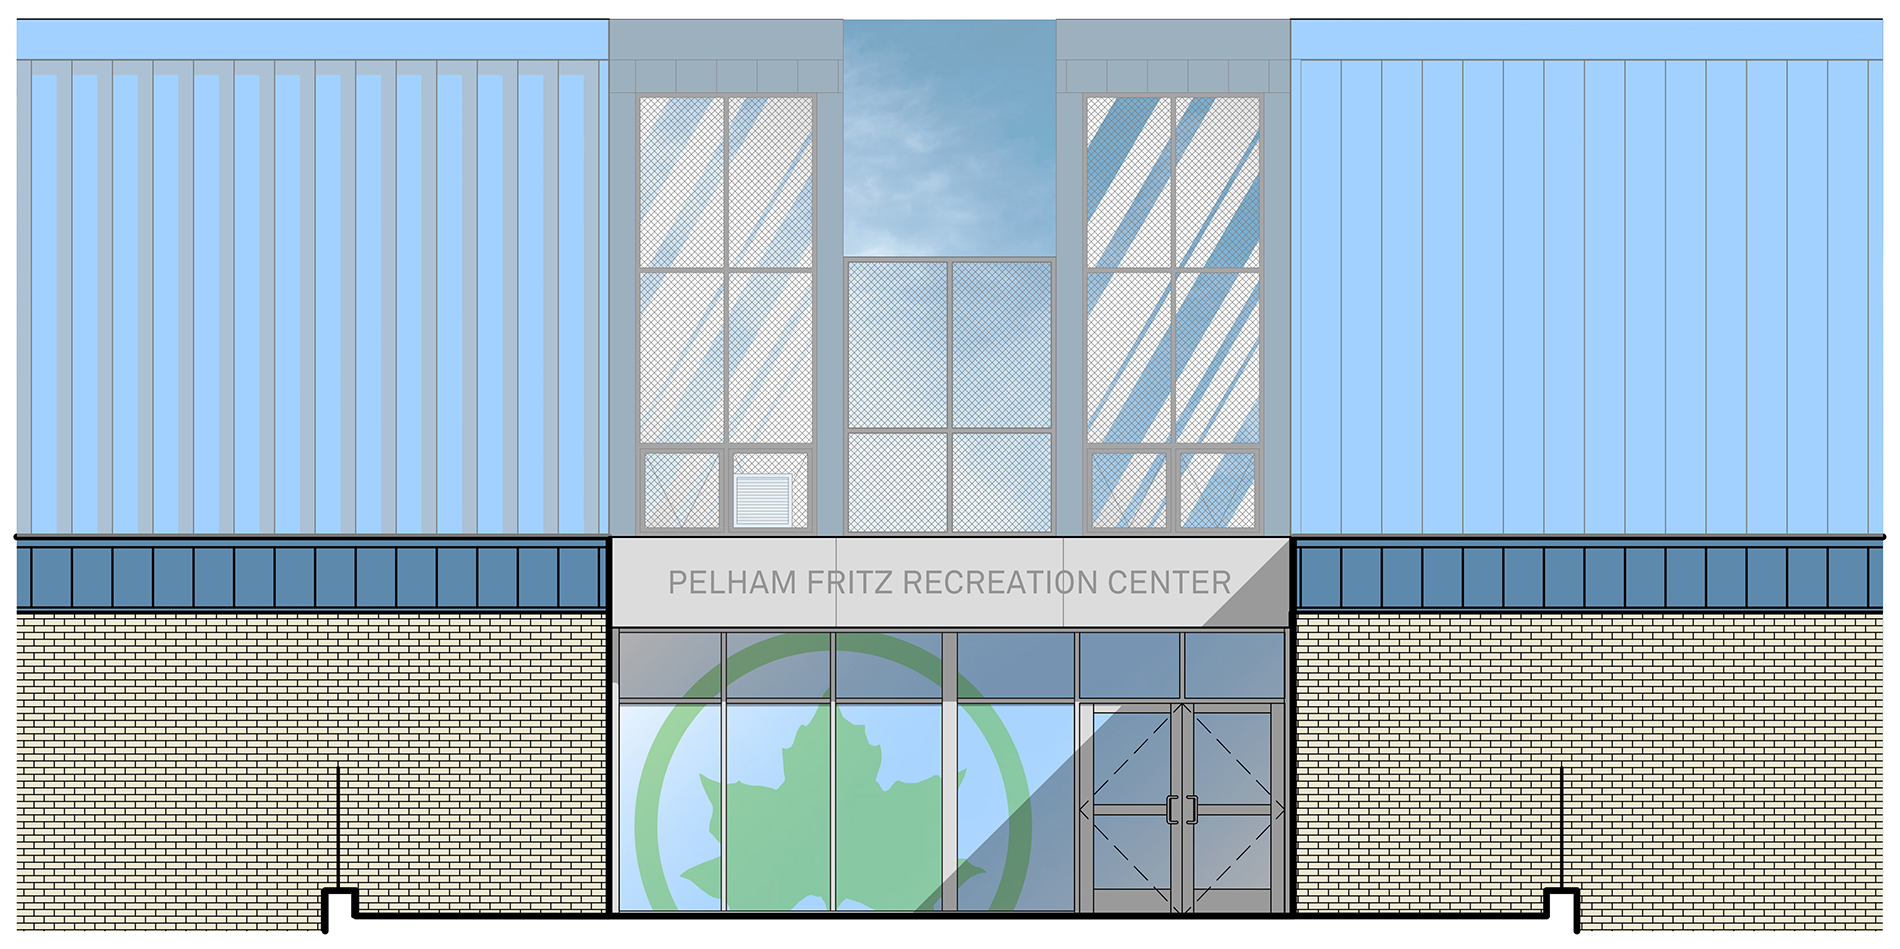 Design of Marcus Garvey Park Pelham Fritz Recreation Center Reconstruction